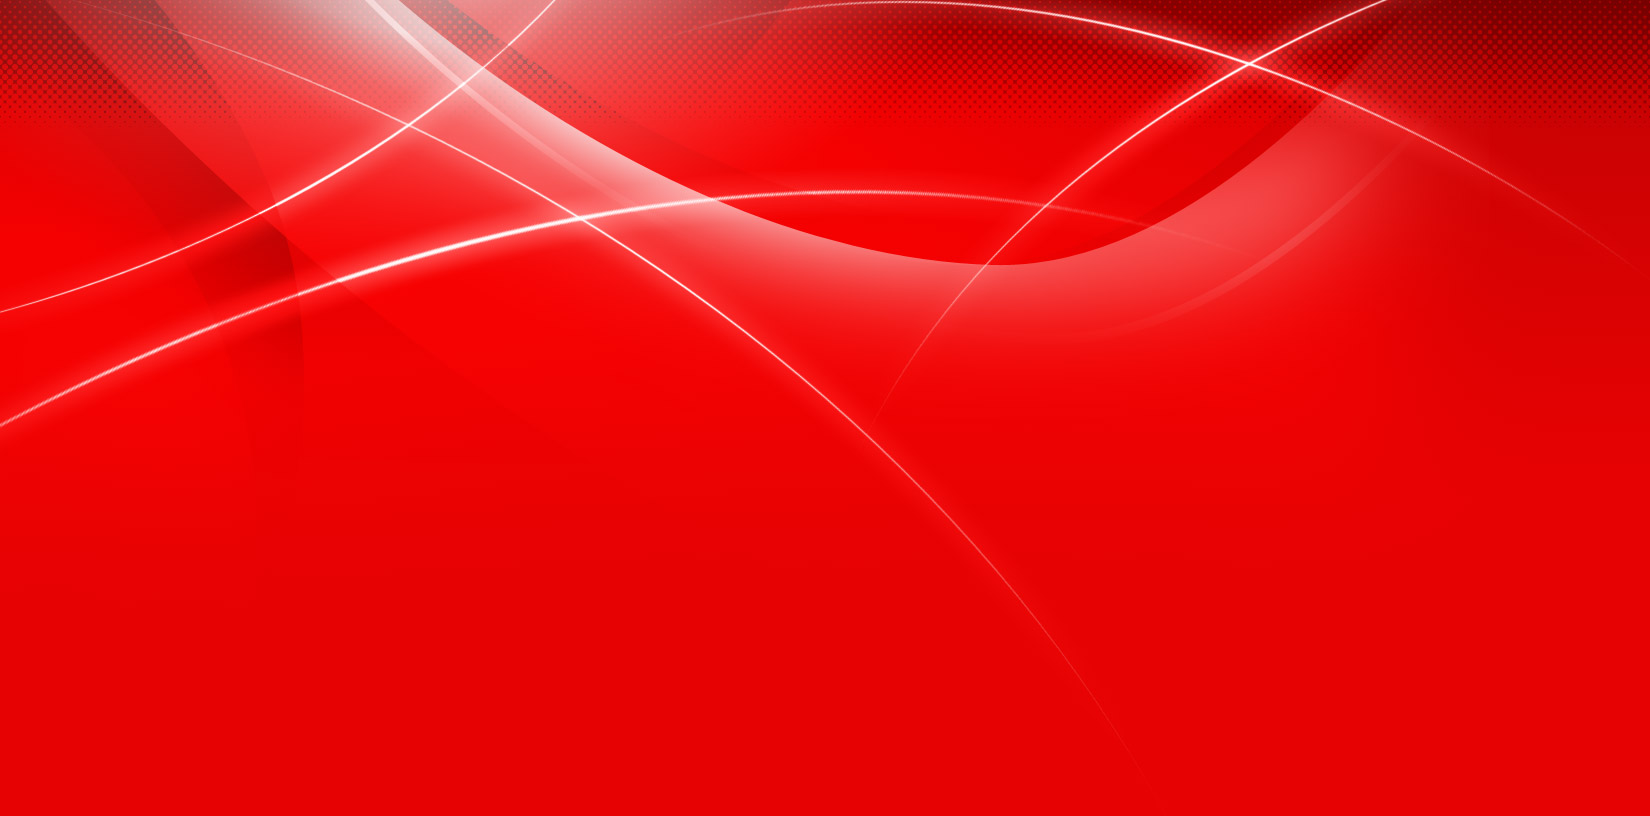 the meaning and symbolism of the word red